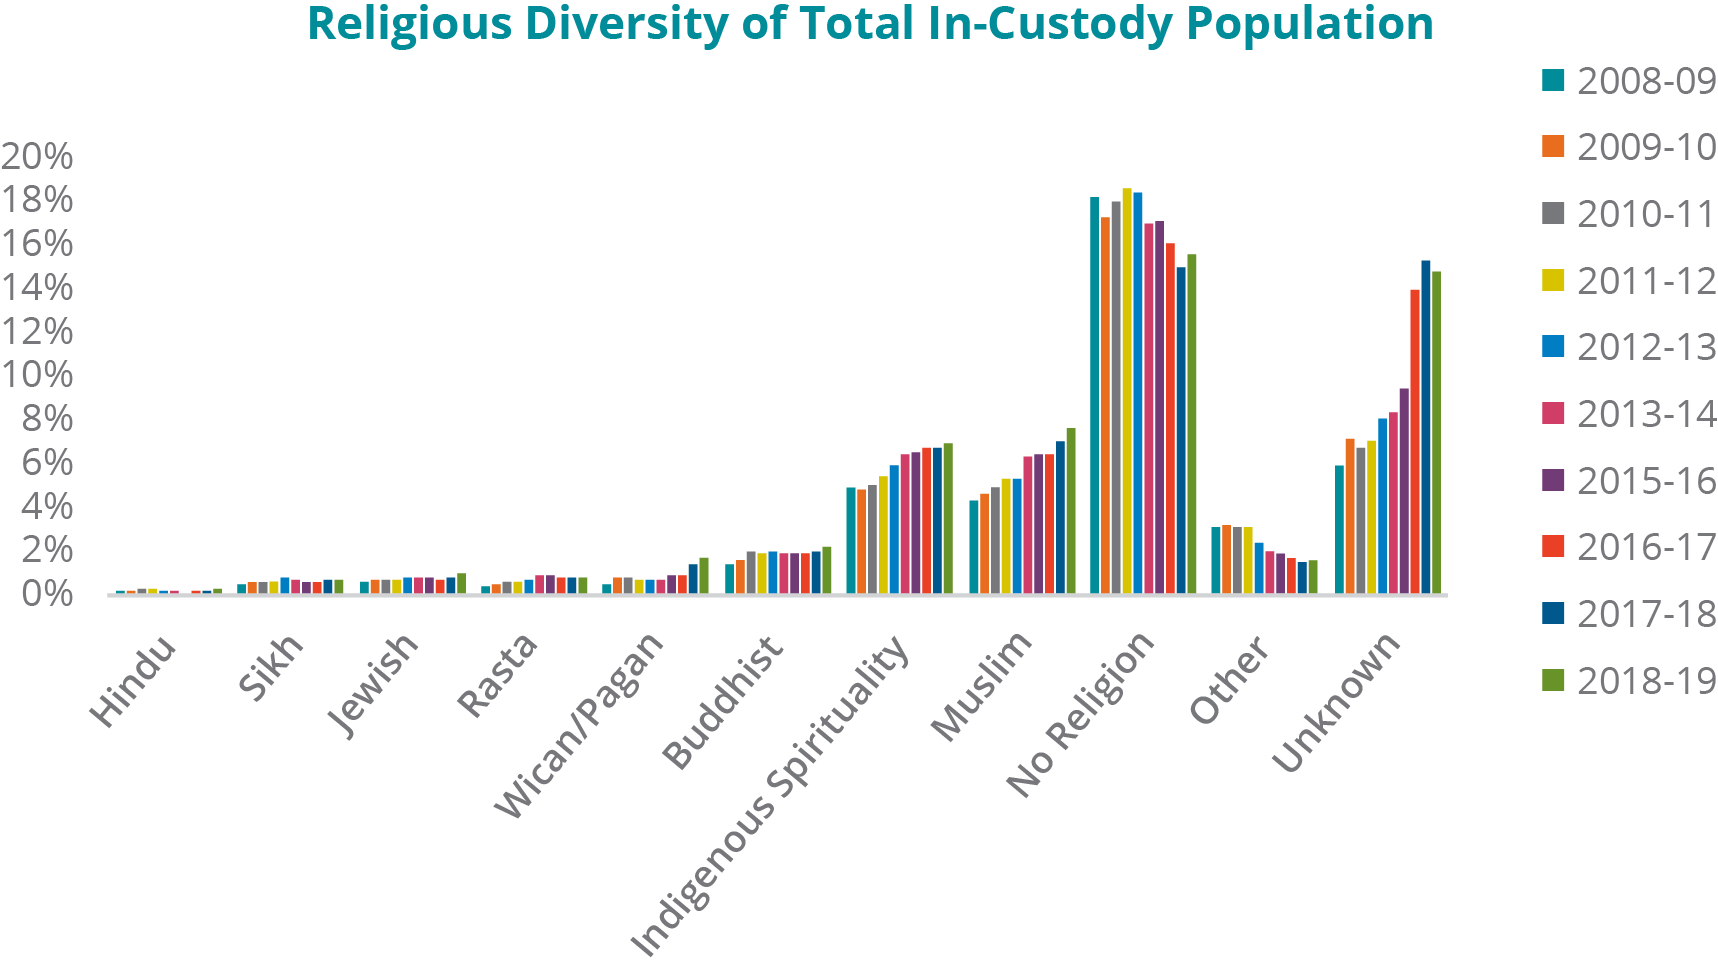 A graph depicting the religious diversity of total in-custody population from fiscal years 2008-09 to 2018-19: - Hindu: In 2008-09, 0.24%; 2009-10, 0.23%; 2010-11, 0.29%; 2011-12, 0.27%; 2012-13, 0.22%; 2013-14, 0.20%; 2015-16, 0.16%; 2016-17, 0.22%; 2017-18, 0.26%; and 2018-19, 0.27%. - Sikh: In 2008-09, 0.49%; 2009-10, 0.57%; 2010-11, 0.58%; 2011-12, 0.67%; 2012-13, 0.79%; 2013-14, 0.76%; 2015-16, 0.60%; 2016-17, 0.59%; 2017-18, 0.71%; and 2018-19, 0.77%. -	Jewish: In 2008-09, 0.67%; 2009-10, 0.74%; 2010-11, 0.77%; 2011-12, 0.73%; 2012-13, 0.84%; 2013-14, 0.87%; 2015-16, 0.83%; 2016-17, 0.73%; 2017-18, 0.80%; and 2018-19, 1.06 %. - Rasta: In 2008-09, 0.46%; 2009-10, 0.52%; 2010-11, 0.59%; 2011-12, 0.64%; 2012-13, 0.69%; 2013-14, 0.89%; 2015-16, 0.90%; 2016-17, 0.86%; 2017-18, 0.79%; and 2018-19, 0.86%. - Wiccan/Pagan: In 2008-09, 0.52%; 2009-10, 0.81%; 2010-11, 0.80%; 2011-12, 0.75%; 2012-13, 0.75%; 2013-14, 0.76%; 2015-16, 0.93%; 2016-17, 0.92%; 2017-18, 1.40%; and 2018-19, 1.79%. - Buddhist: In 2008-09, 1.48%; 2009-10, 1.60%; 2010-11, 2.10%; 2011-12, 1.96%; 2012-13, 2.08%; 2013-14, 1.94%; 2015-16, 1.98%; 2016-17, 1.95%; 2017-18, 2.06%; and 2018-19, 2.24%. -	Indigenous Spirituality: In 2008-09, 5.02%; 2009-10, 4.86%; 2010-11, 5.09%; 2011-12, 5.51%; 2012-13, 6.05%; 2013-14, 6.56%; 2015-16, 6.61%; 2016-17, 6.87%; 2017-18, 6.82%; and 2018-19, 7.00%. - Muslim: In 2008-09, 4.35%; 2009-10, 4.76%; 2010-11, 4.99%; 2011-12, 5.40%; 2012-13, 5.45%; 2013-14, 6.42%; 2015-16, 6.56%; 2016-17, 6.59%; 2017-18, 7.11%; and 2018-19, 7.73%. -	No identified religion: In 2008-09, 18.45%; 2009-10, 17.54%; 2010-11, 18.24%; 2011-12, 18.89%; 2012-13, 18.69%; 2013-14, 17.23%; 2015-16, 17.37%; 2016-17, 16.30%; 2017-18, 15.25%; and 2018-19, 15.80%. - Other religions: In 2008-09, 3.17%; 2009-10, 3.23%; 2010-11, 3.14%; 2011-12, 3.13%; 2012-13, 2.45%; 2013-14, 2.03%; 2015-16, 1.95%; 2016-17, 1.77%; 2017-18, 1.59%; and 2018-19, 1.60%. -	Religion unknown: In 2008-09, 6.06%; 2009-10, 7.26%; 2010-11, 6.83%; 2011-12, 7.19%; 2012-13, 8.14%; 2013-14, 8.45%; 2015-16, 9.59%; 2016-17, 14.21%; 2017-18, 15.48%; and 2018-19, 14.98%. Note: Data was not available for 2014-15 fiscal year from CSC's Data Warehouse.